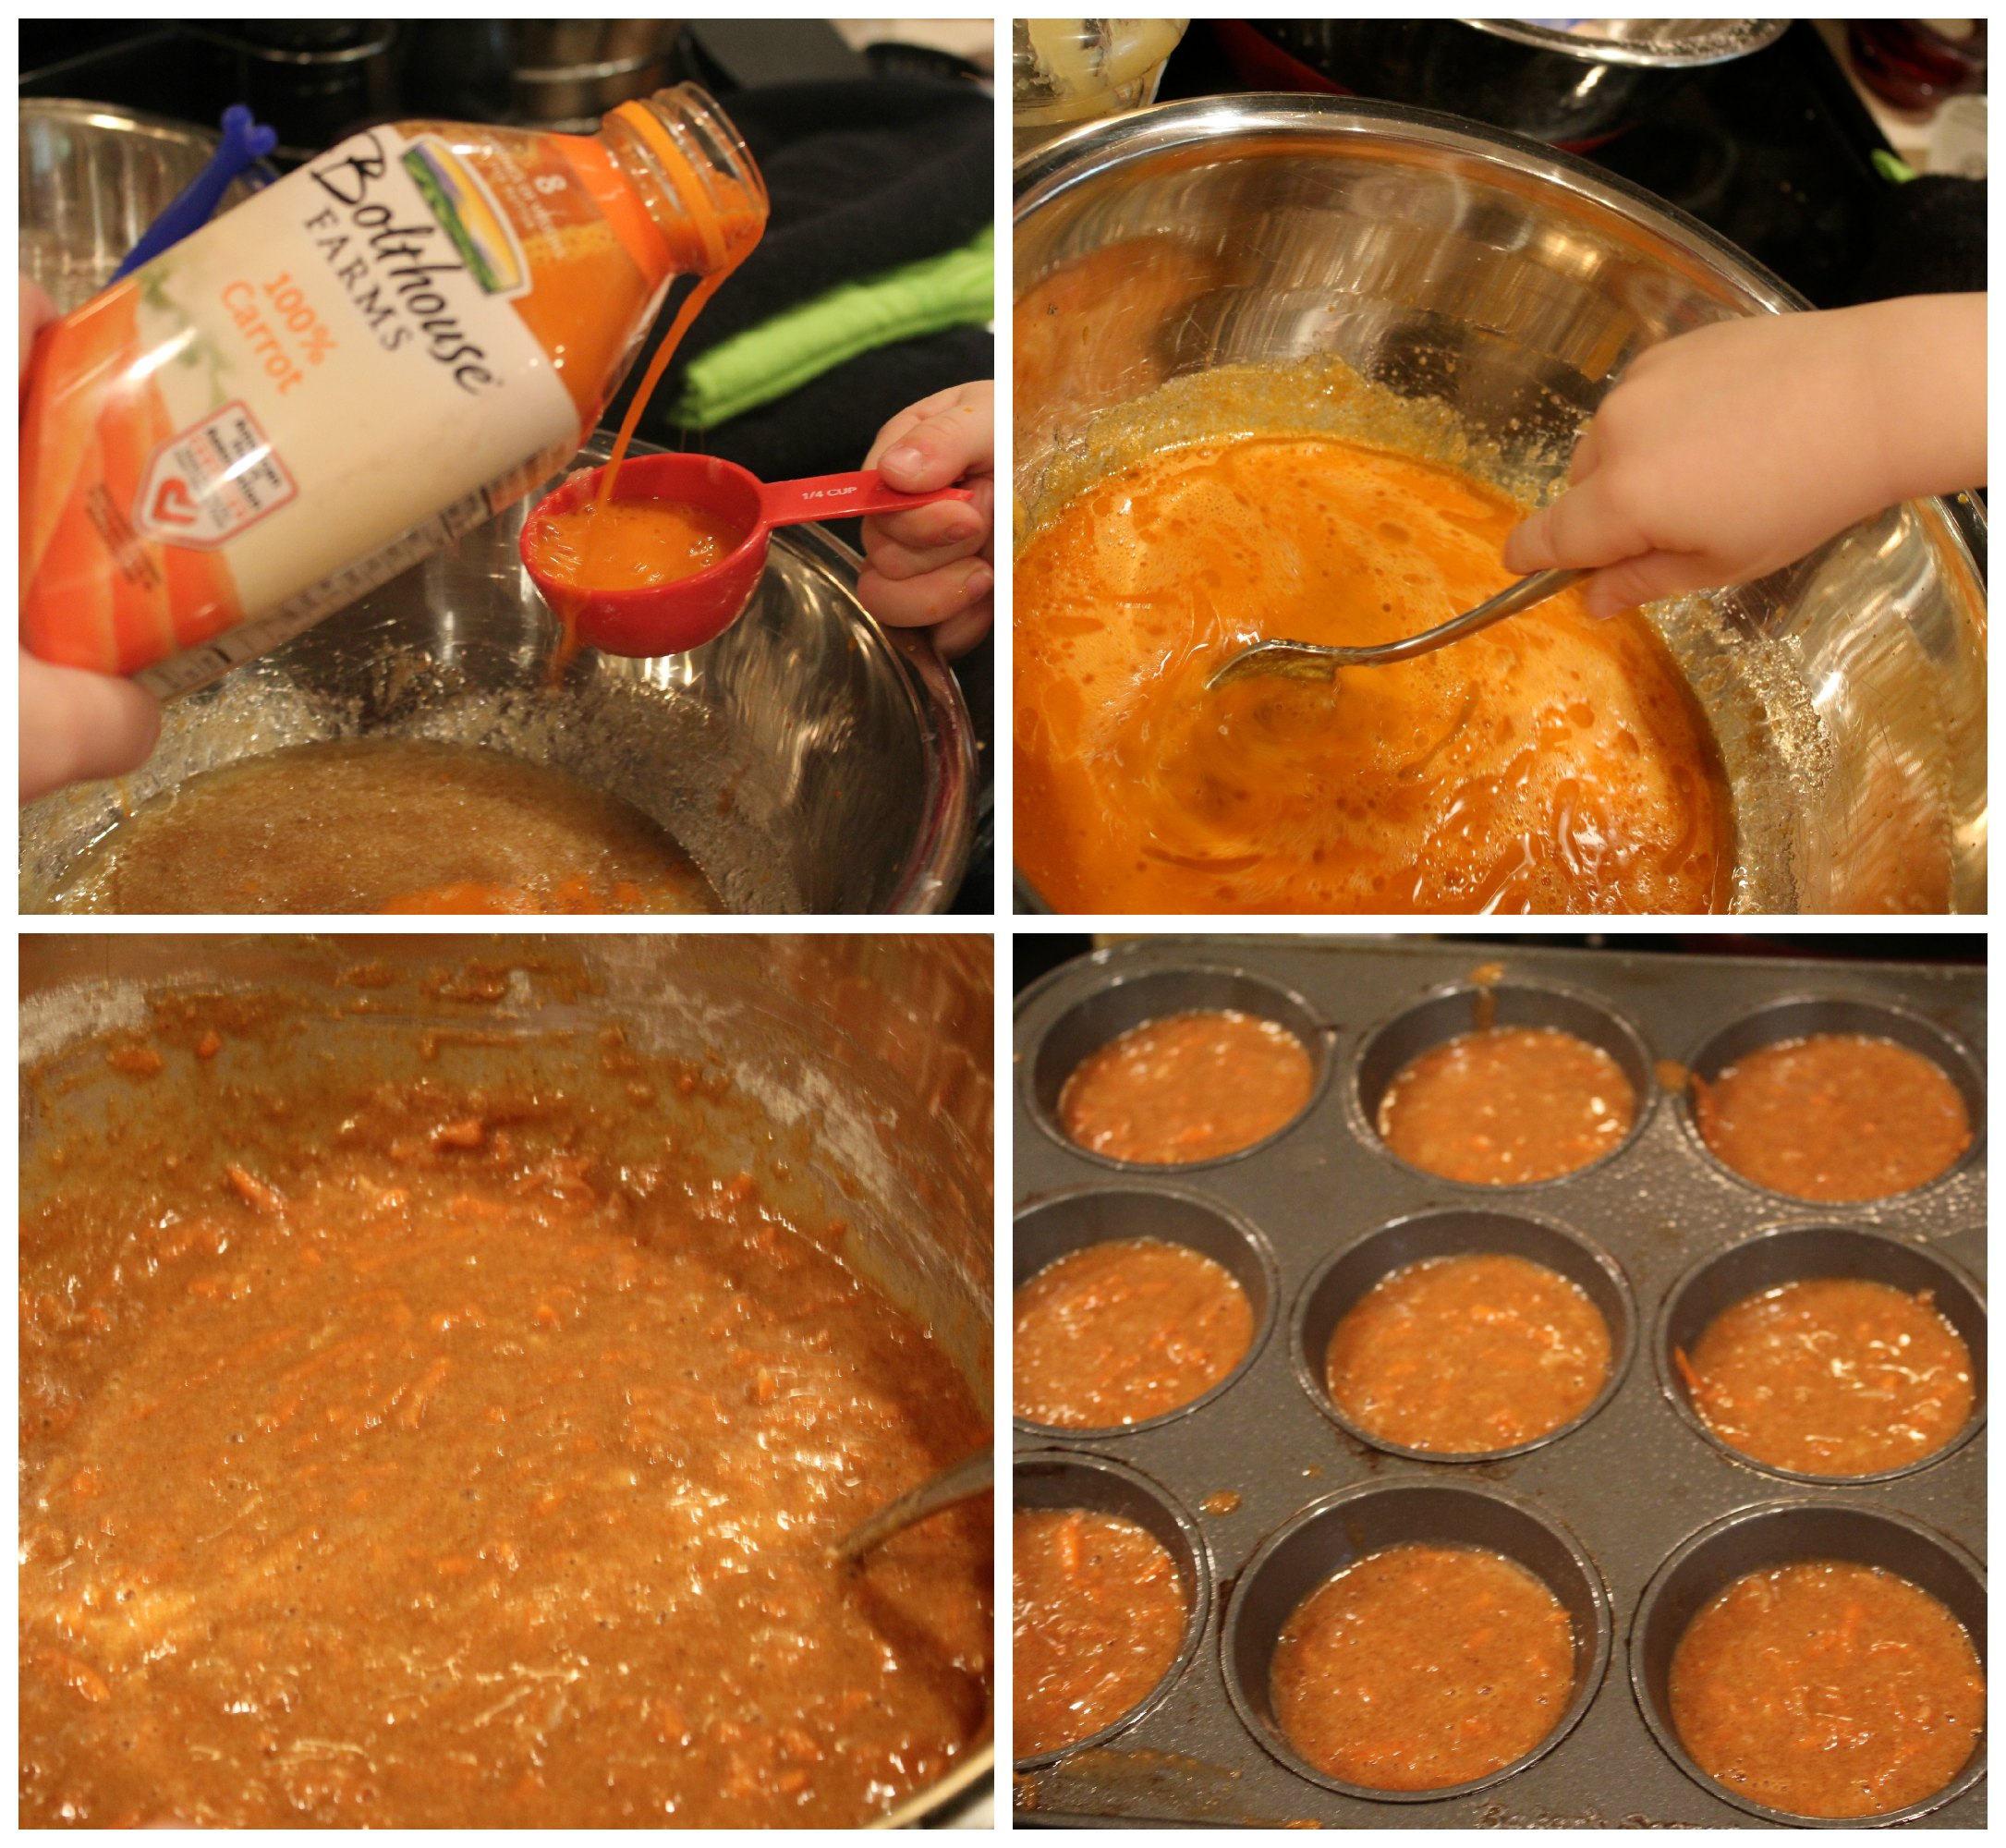 Making carrot cake muffins